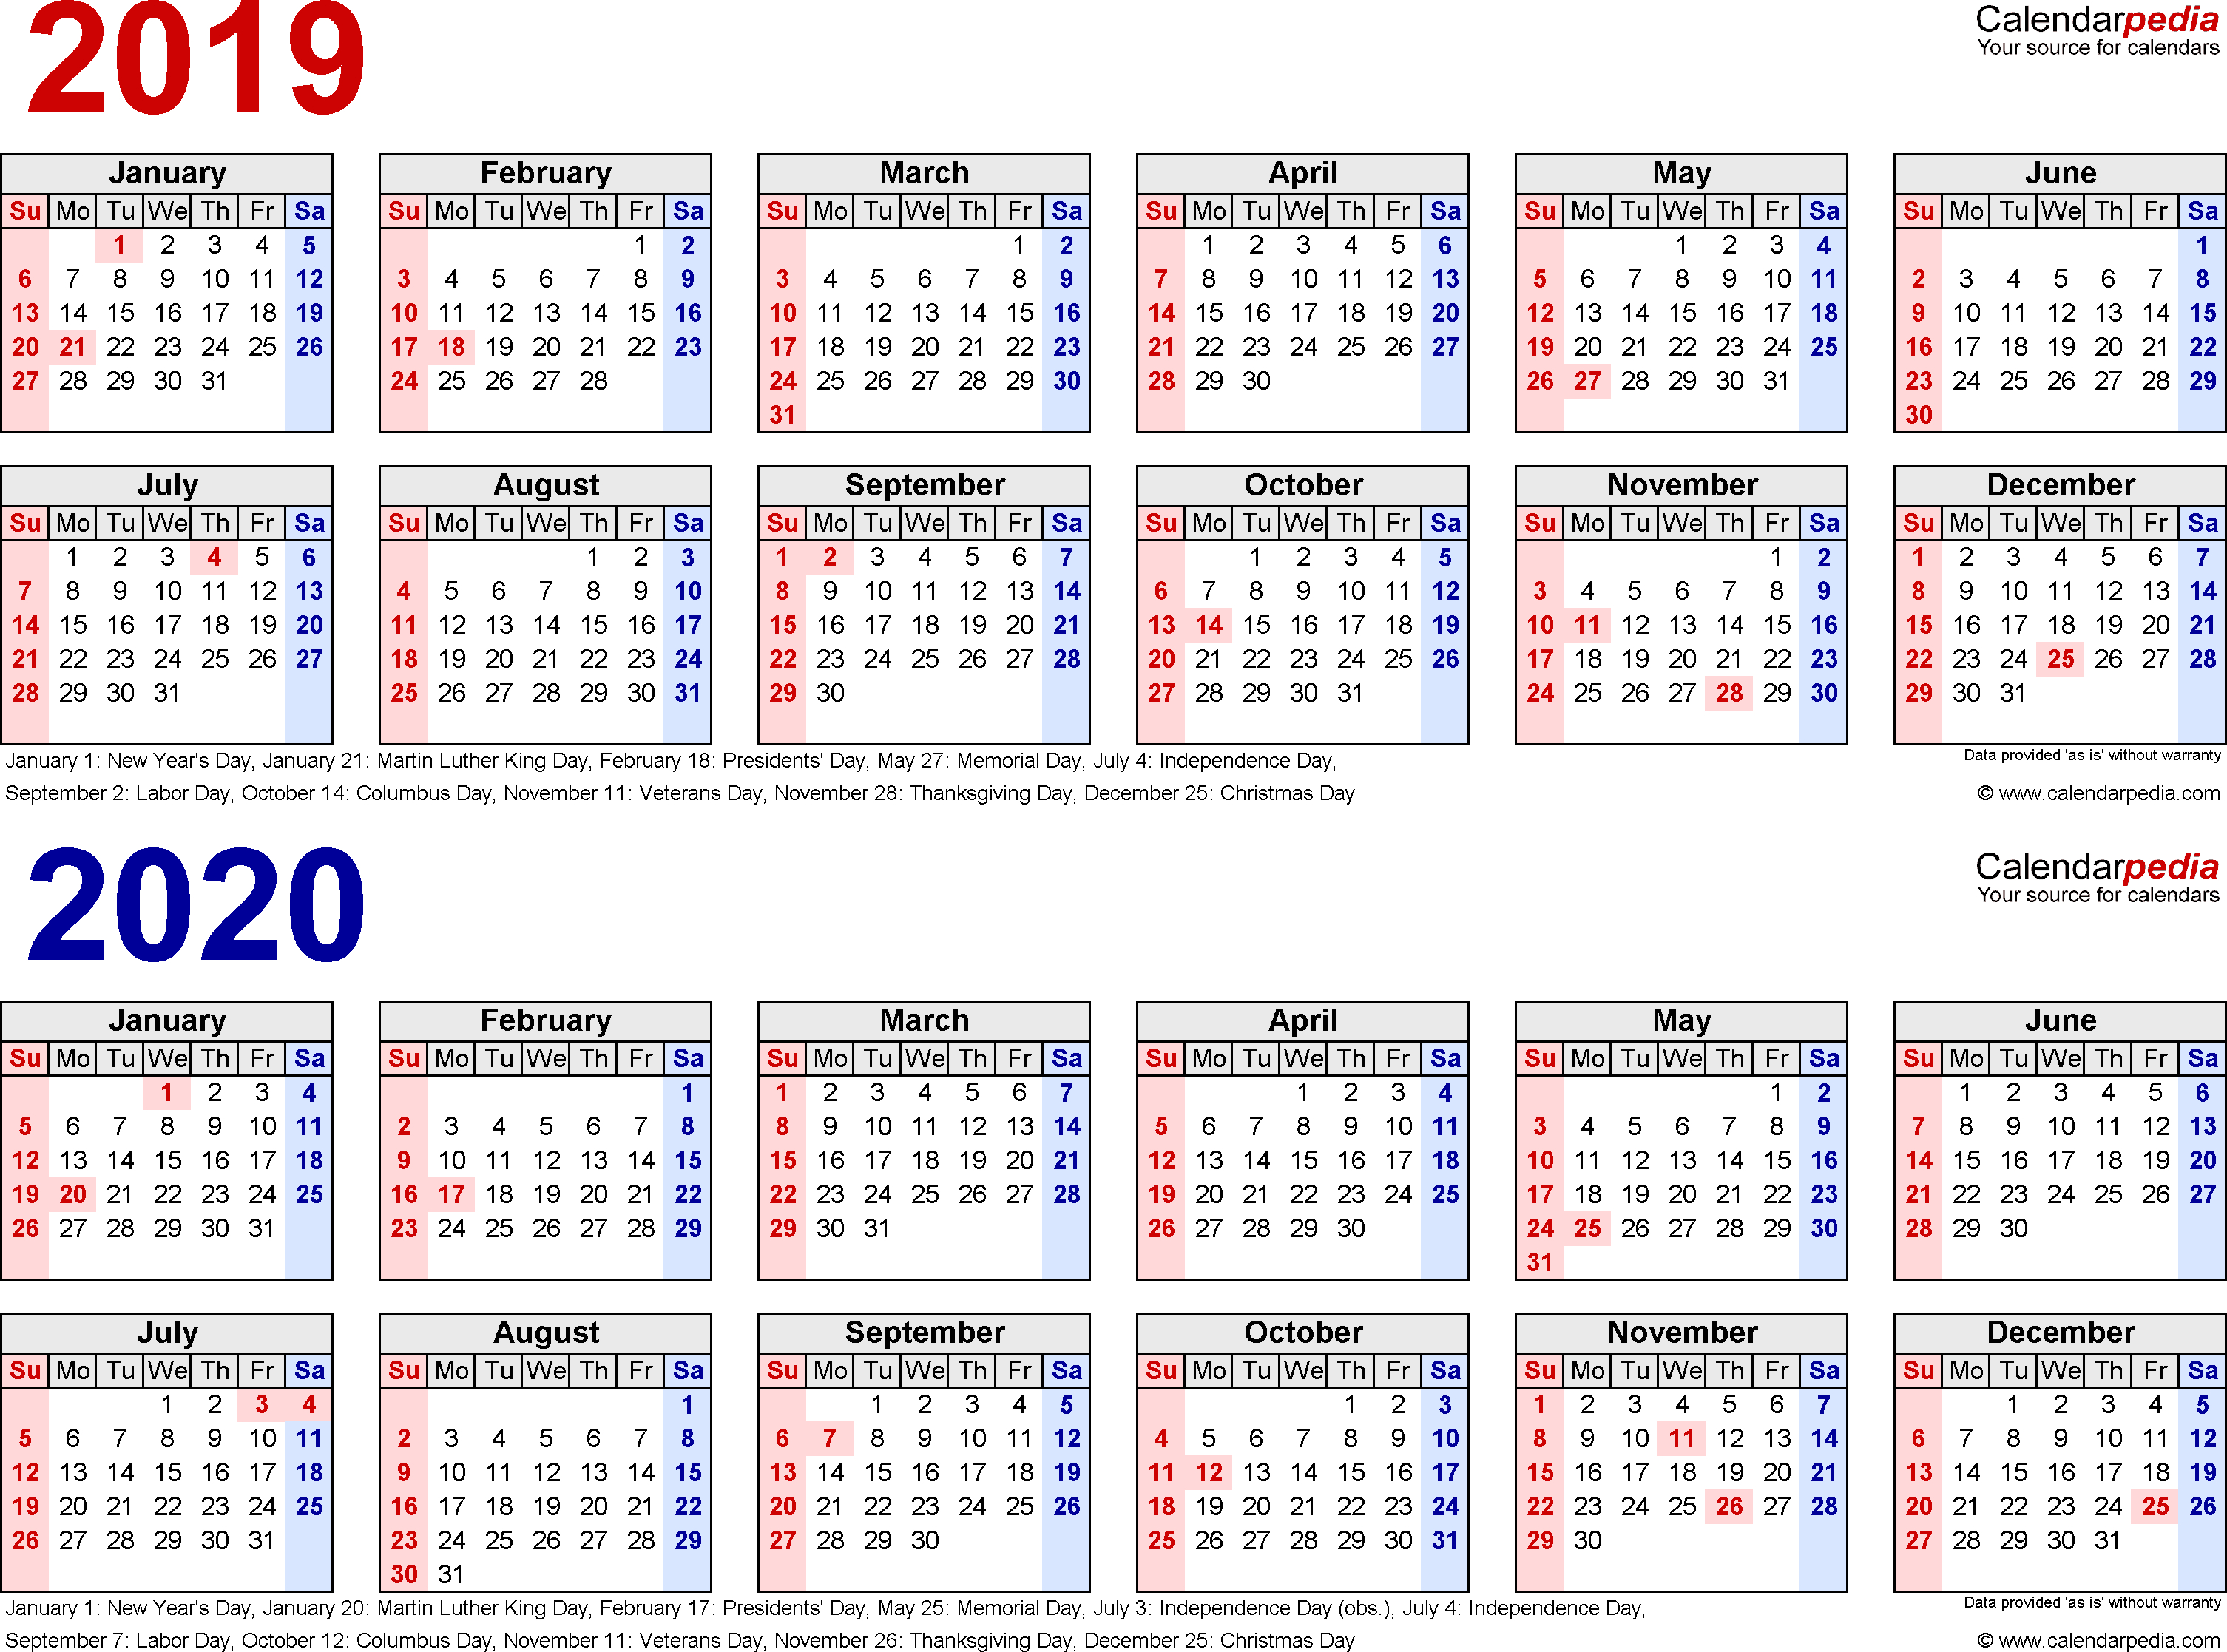 2019-2020 Calendar - Free Printable Two-Year Word Calendars intended for 2019 2020 Ms Word Calendar